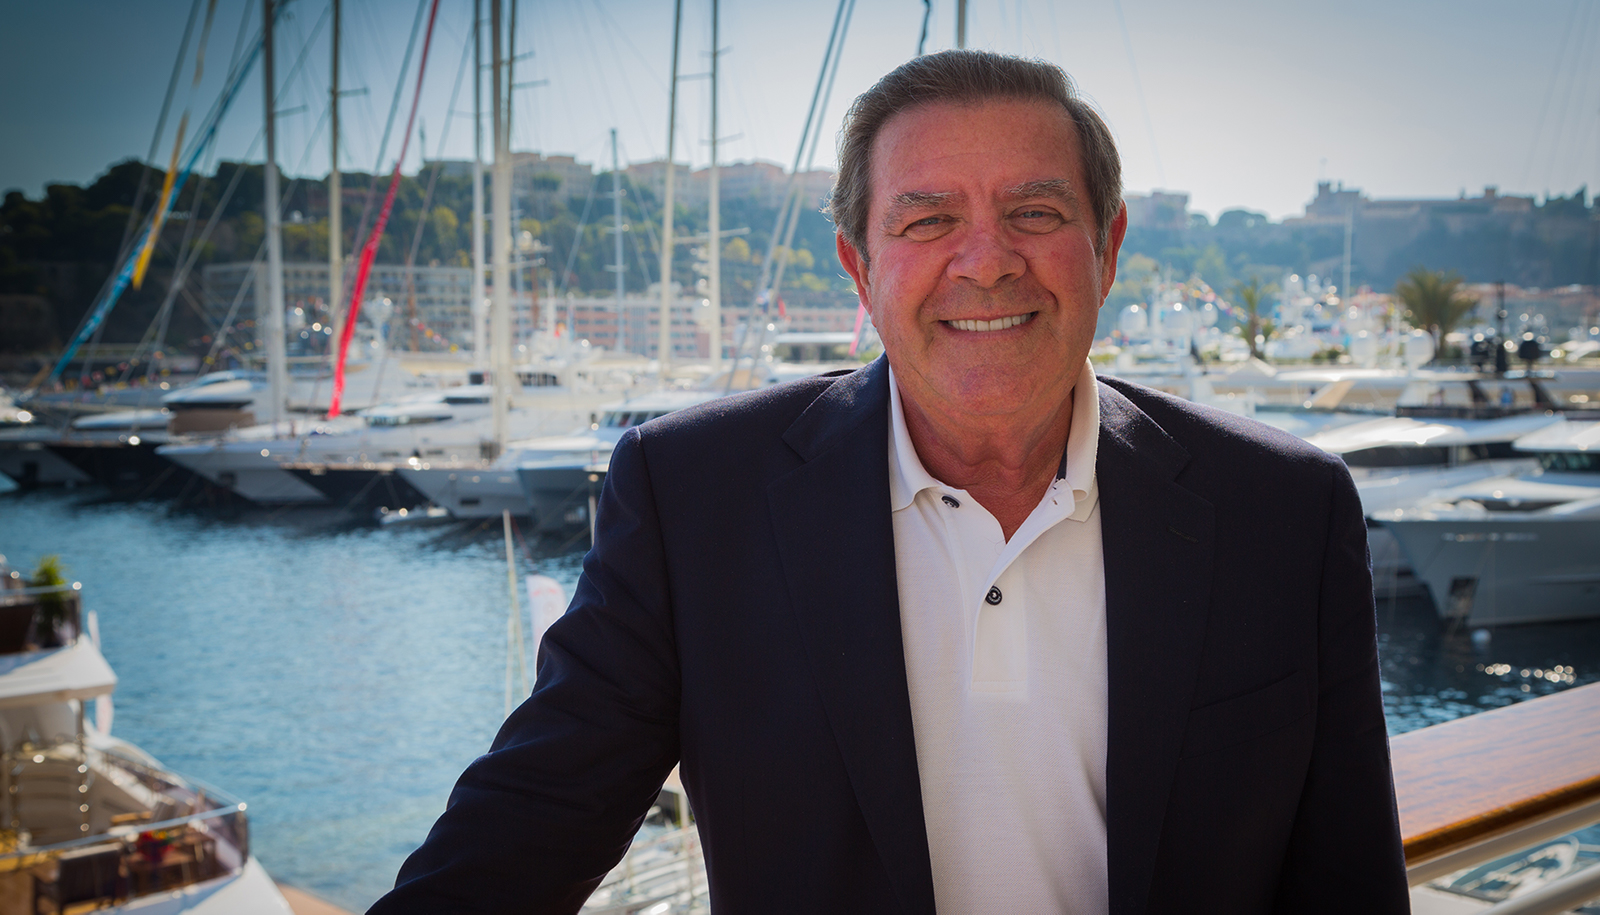 Terry Giles at the harbor